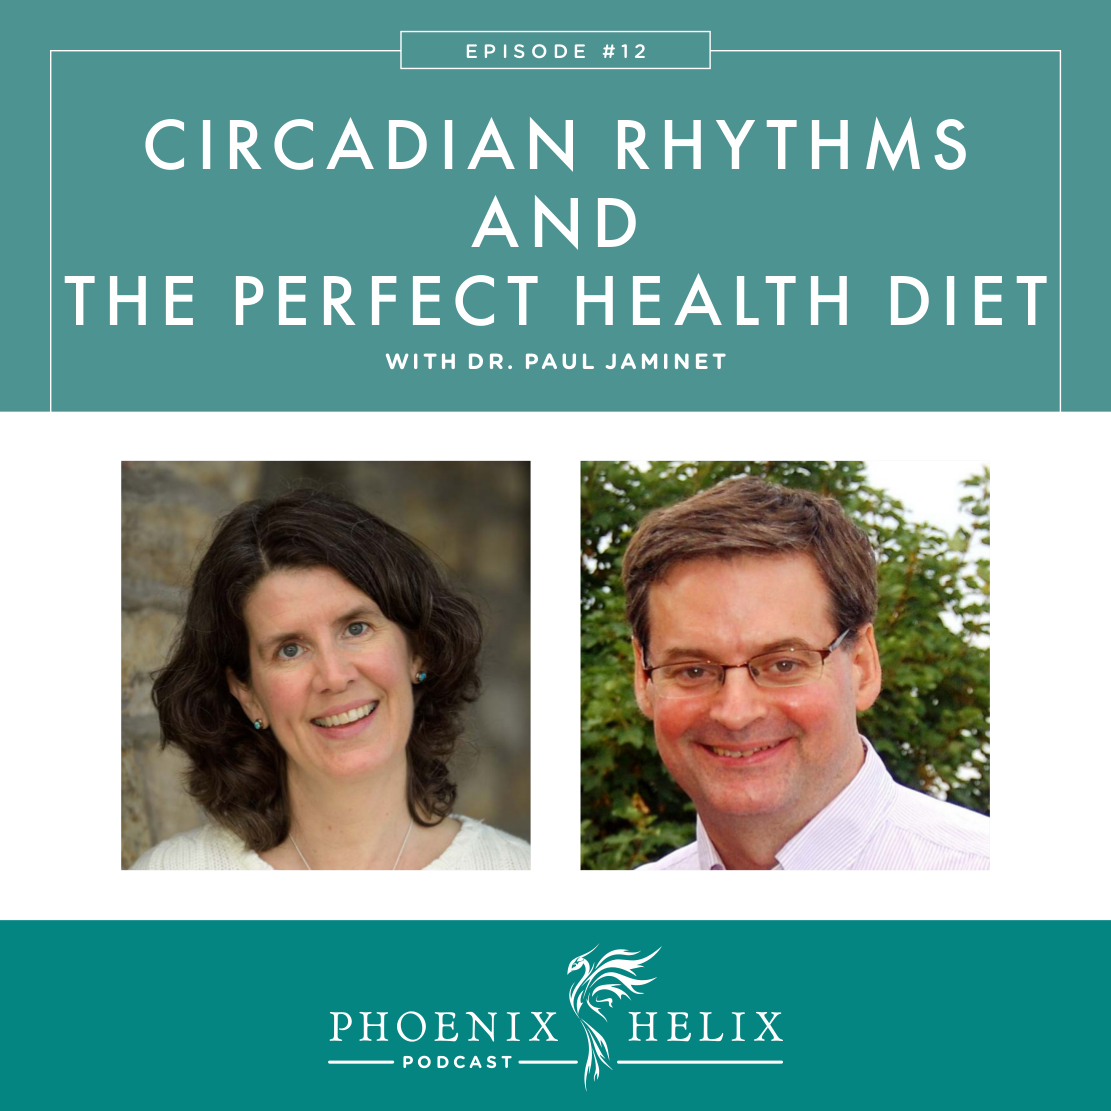 Circadian Rhythms & The Perfect Health Diet with Dr. Paul Jaminet | Phoenix Helix Podcast